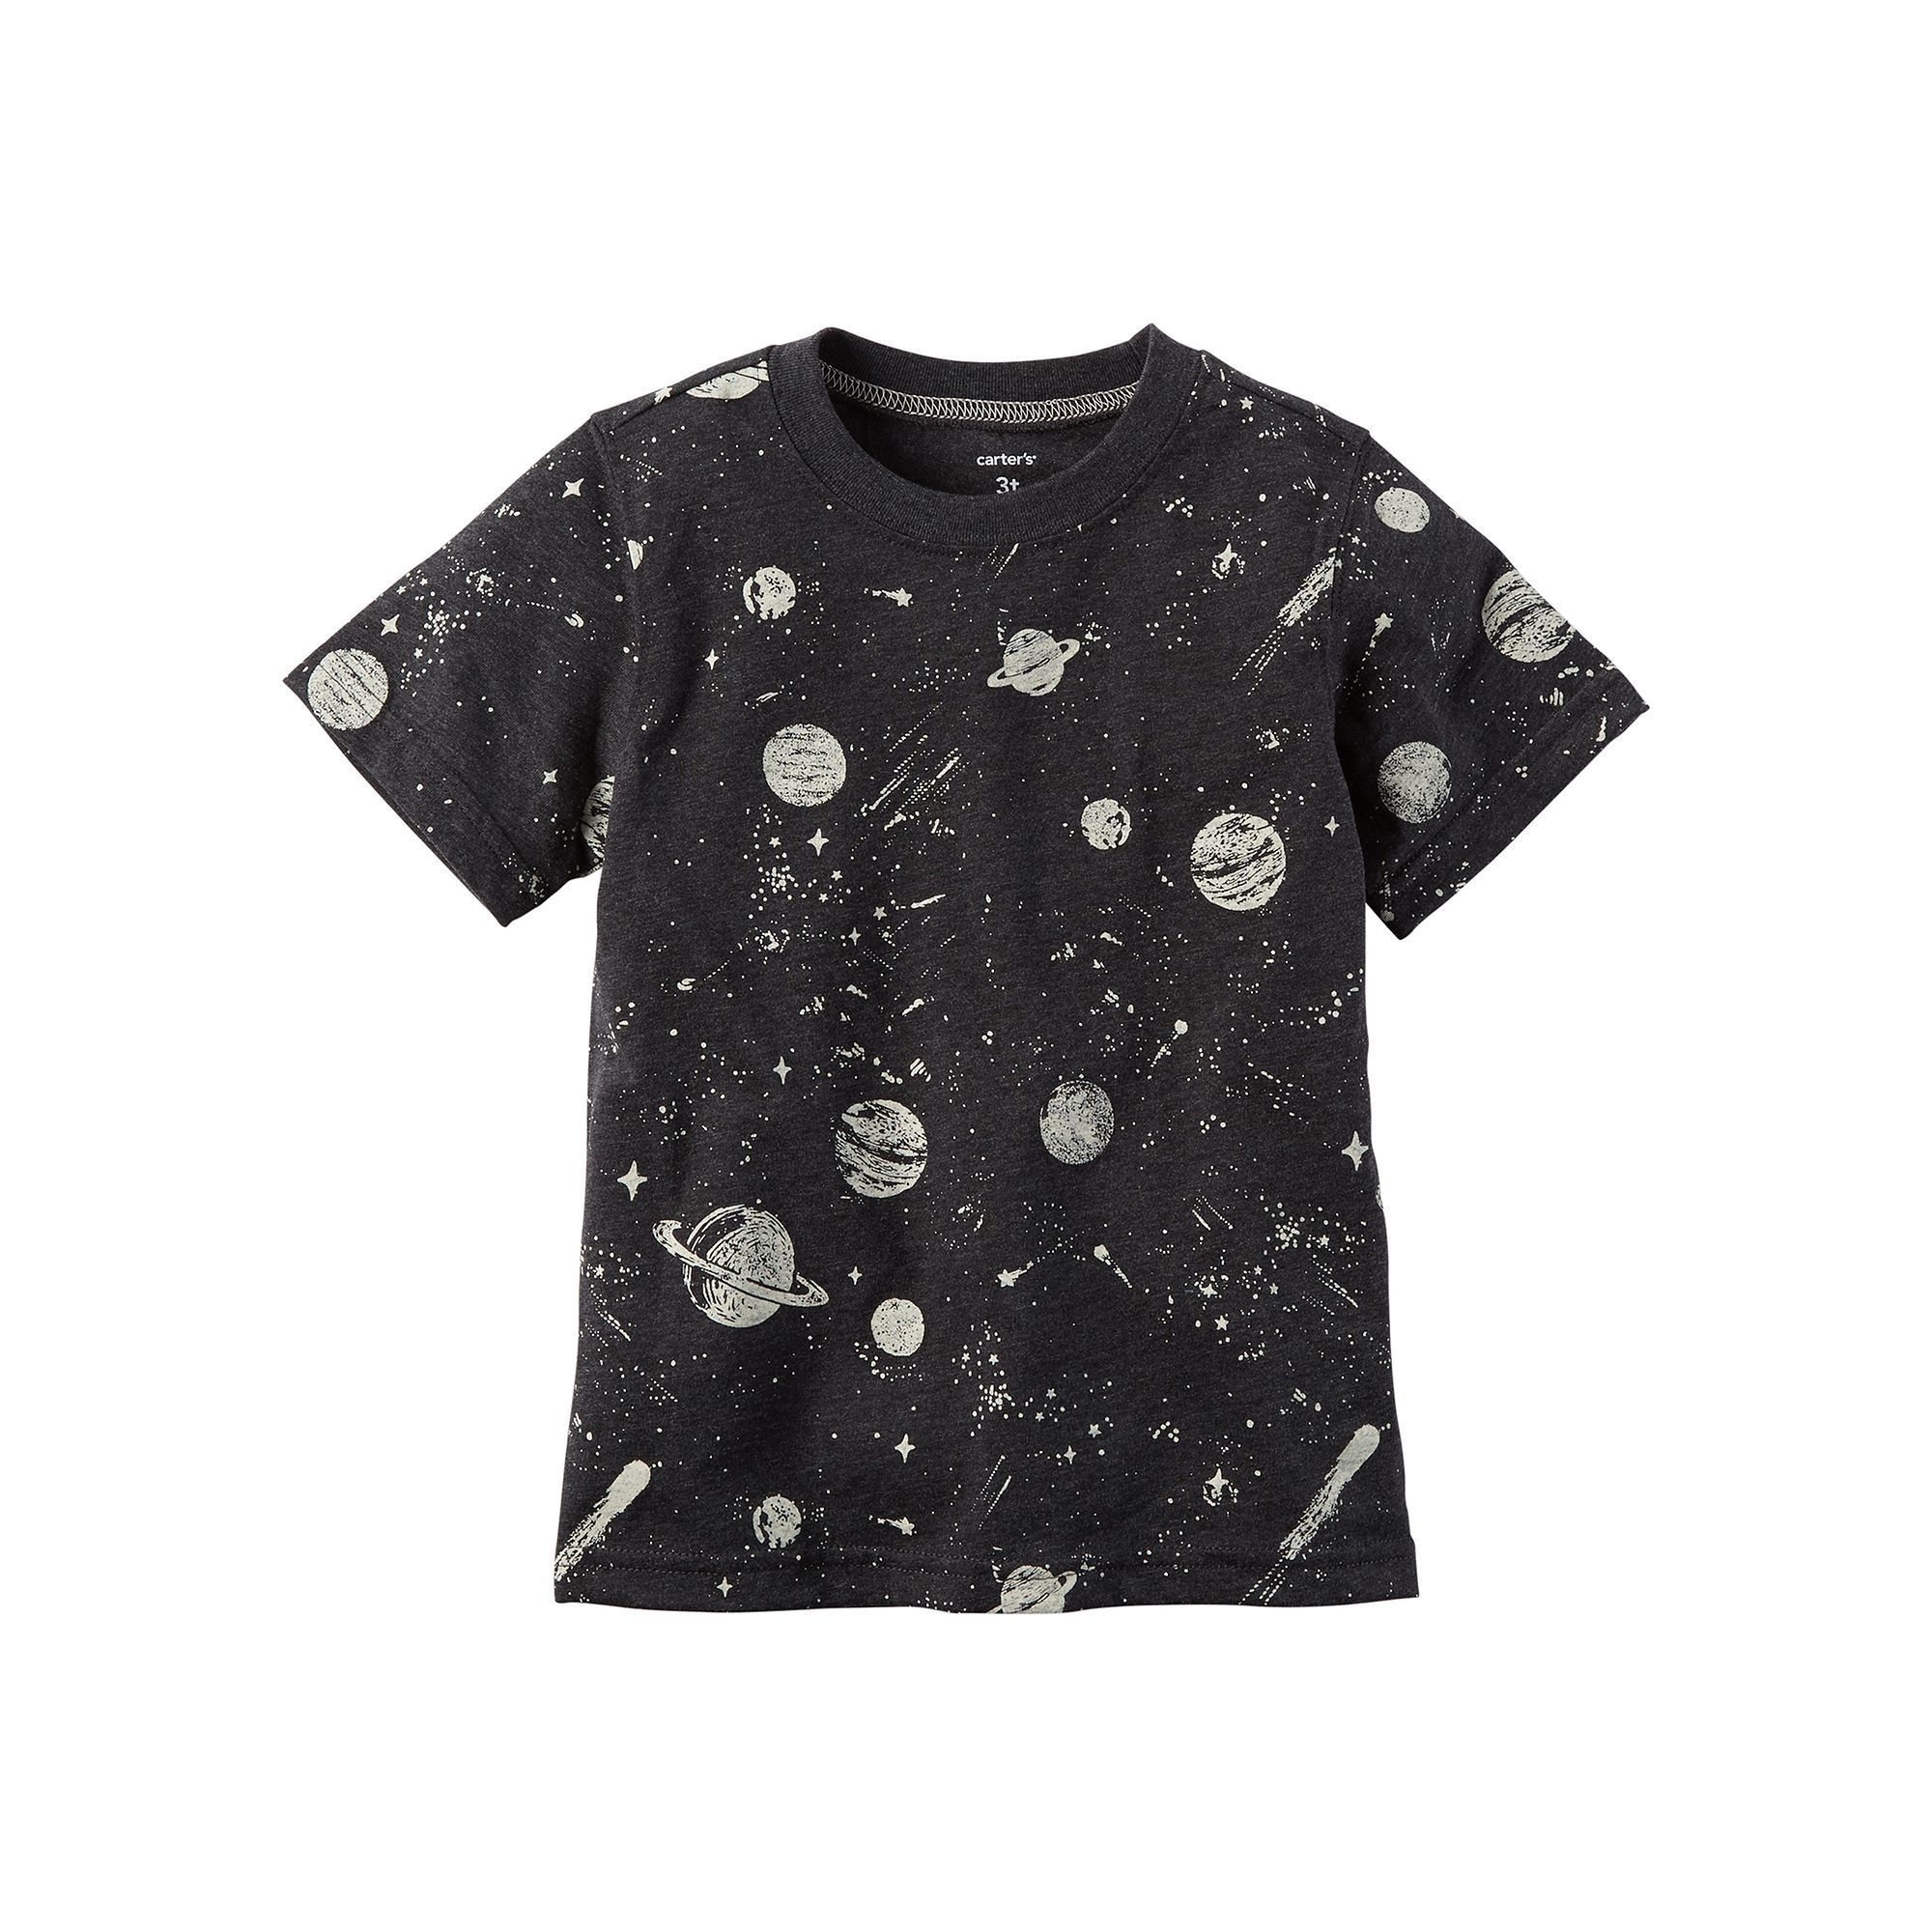 Toddler Boy Carter s Print Graphic Tee Size 2T Blue